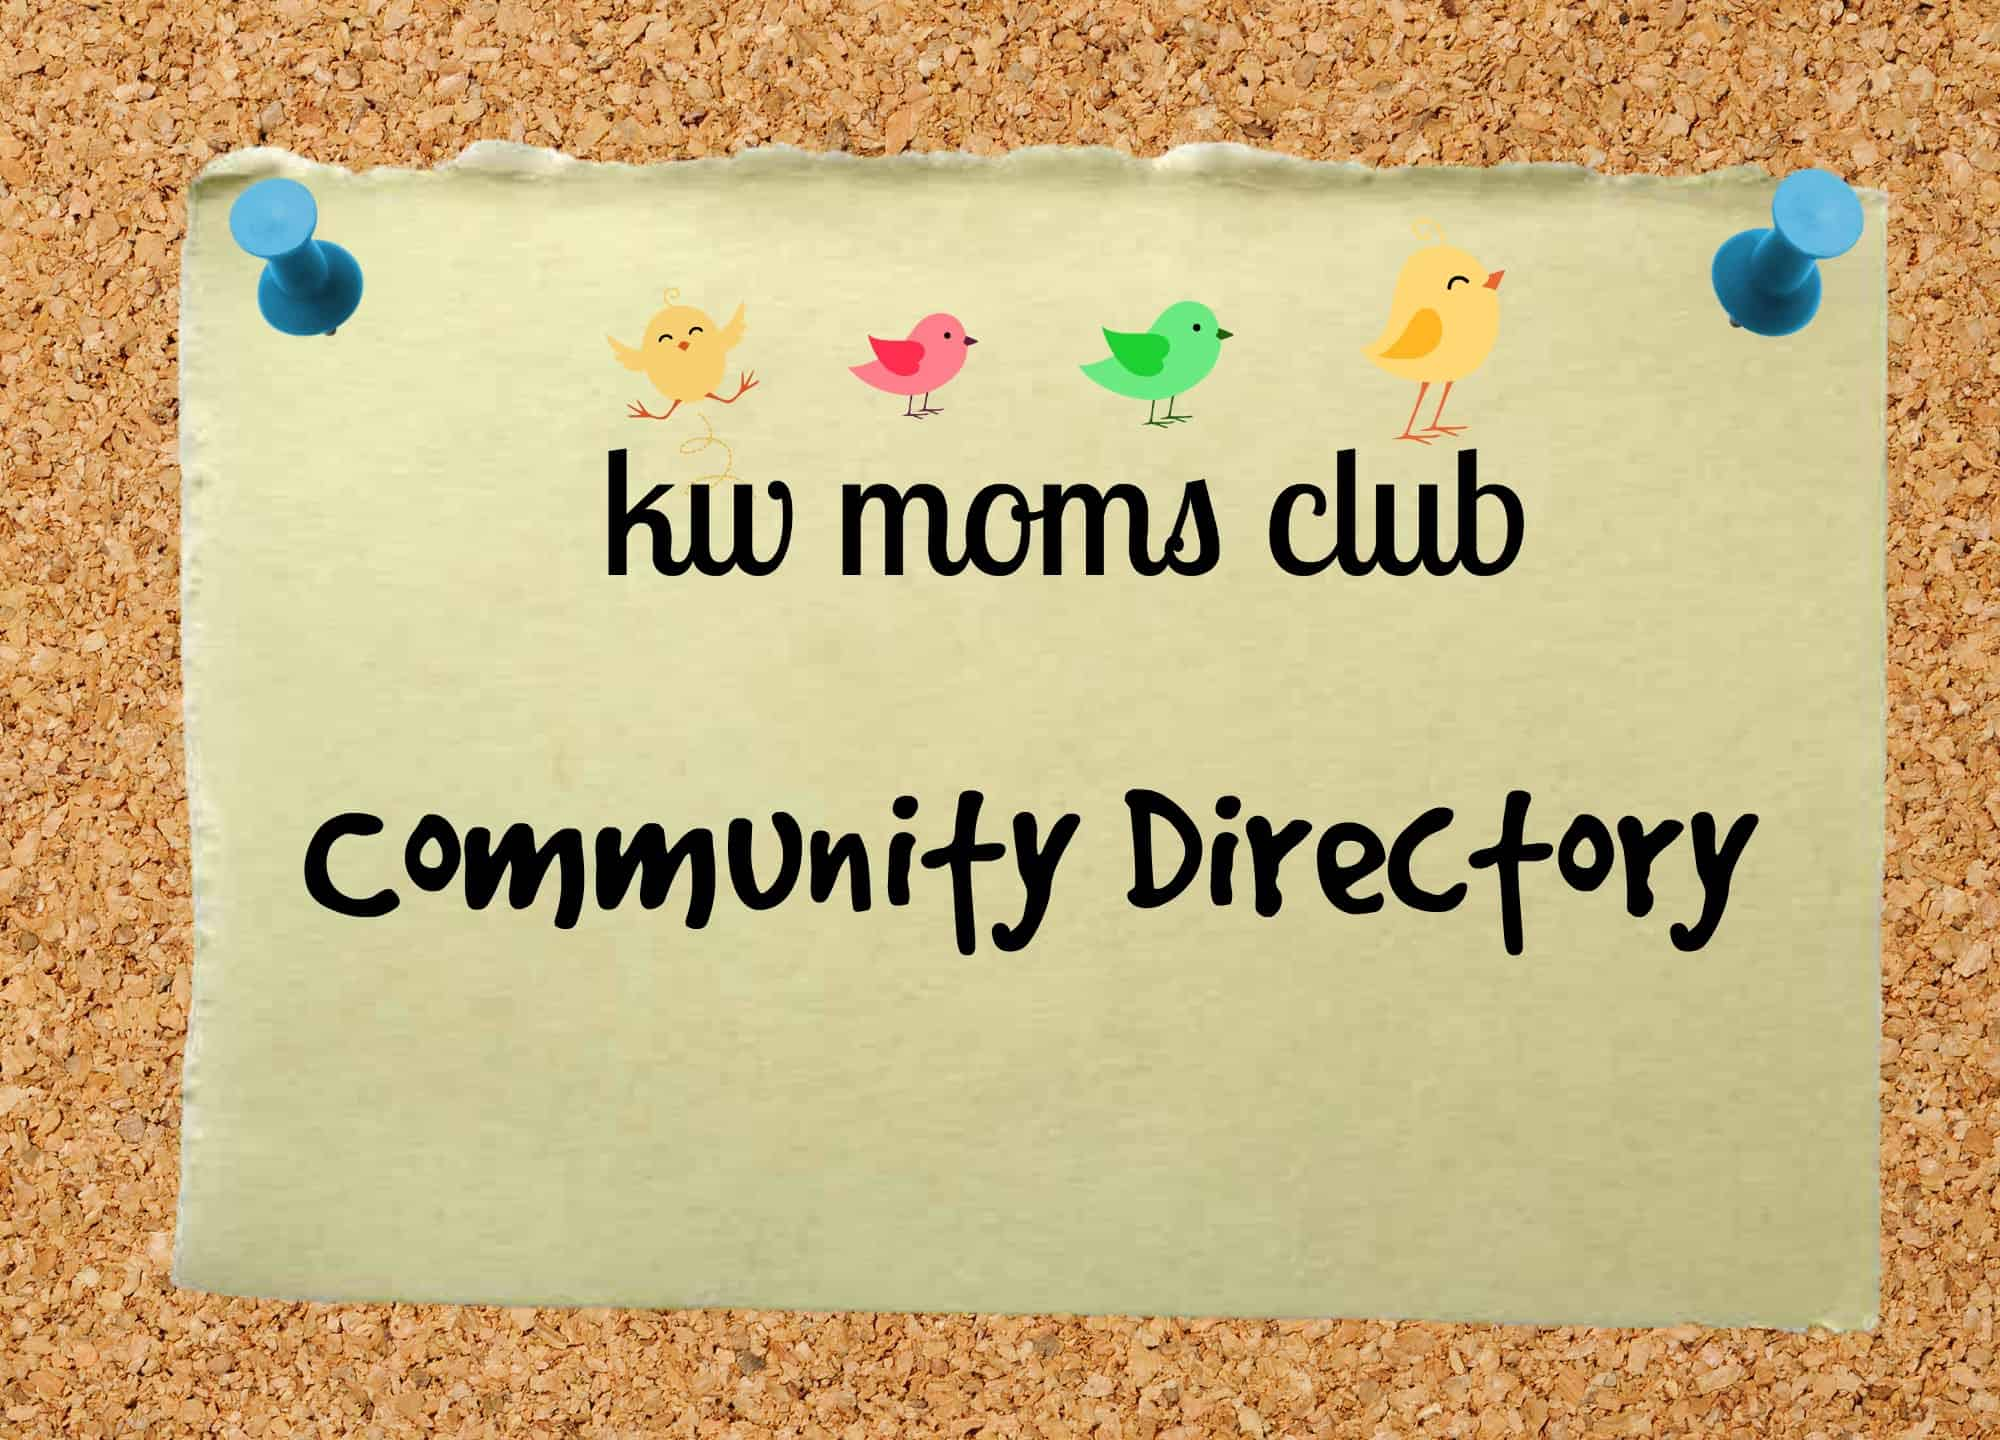 Our Community Directory